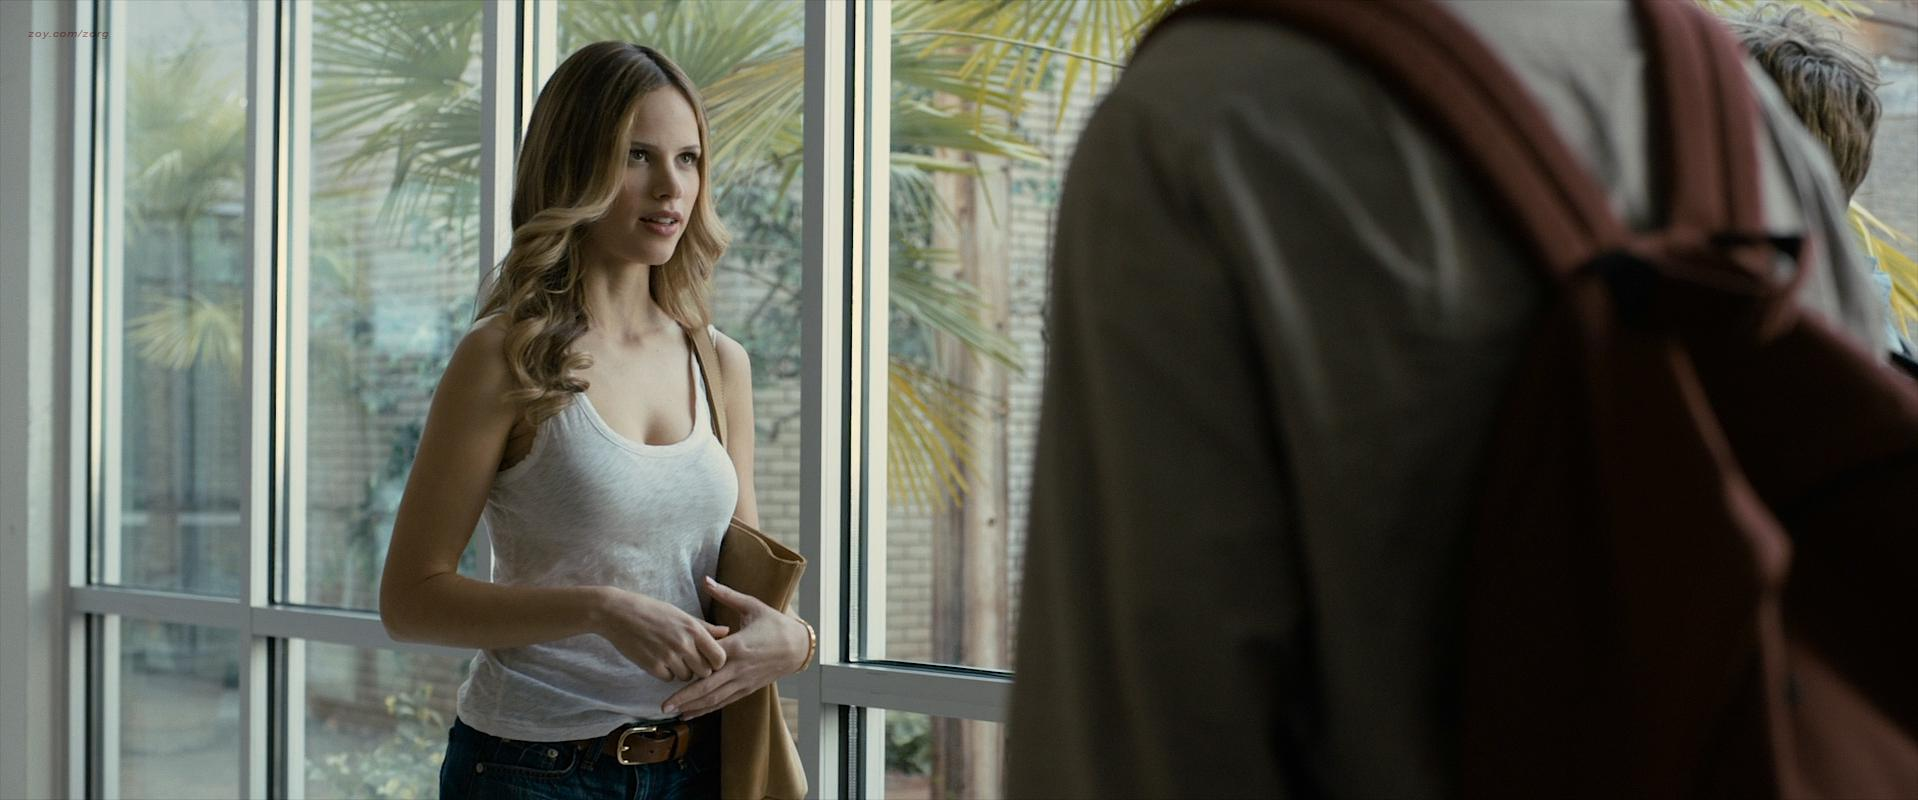 Nude video celebs  Halston Sage sexy  Paper Towns 2015